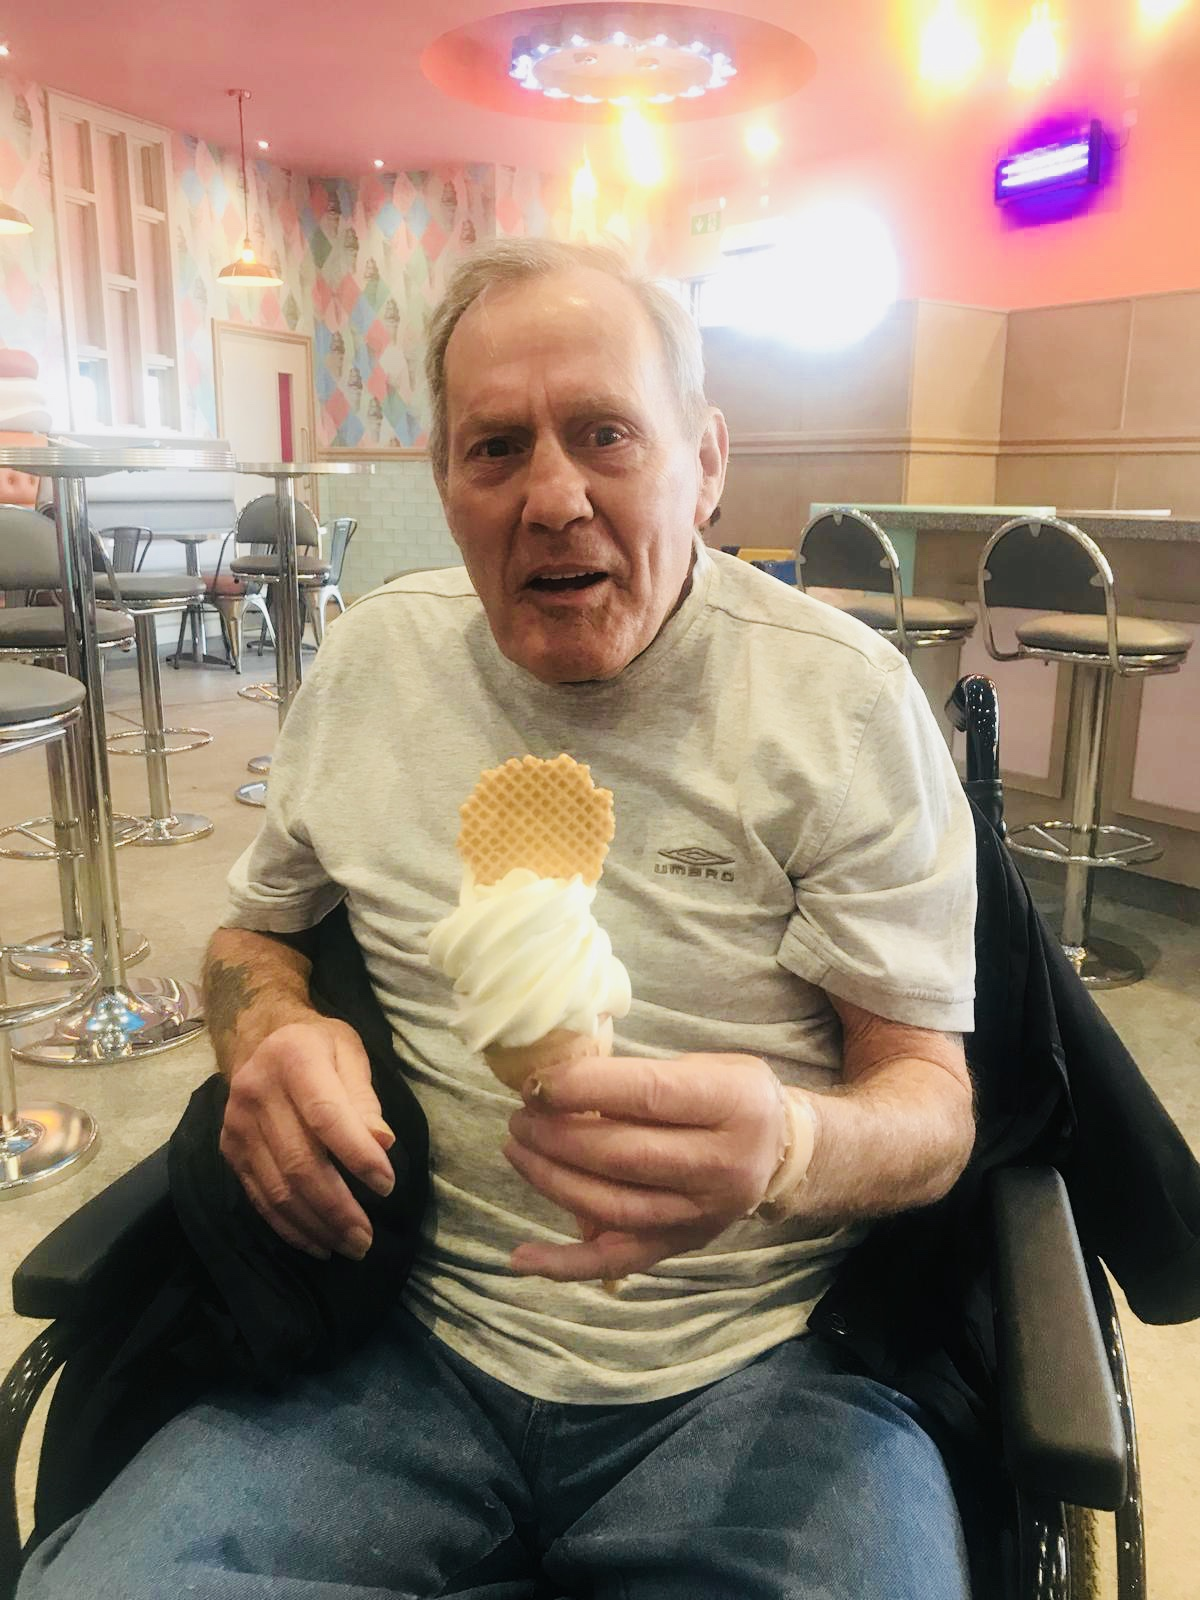 Ice Cream Treat: Key Healthcare is dedicated to caring for elderly residents in safe. We have multiple dementia care homes including our care home middlesbrough, our care home St. Helen and care home saltburn. We excel in monitoring and improving care levels.